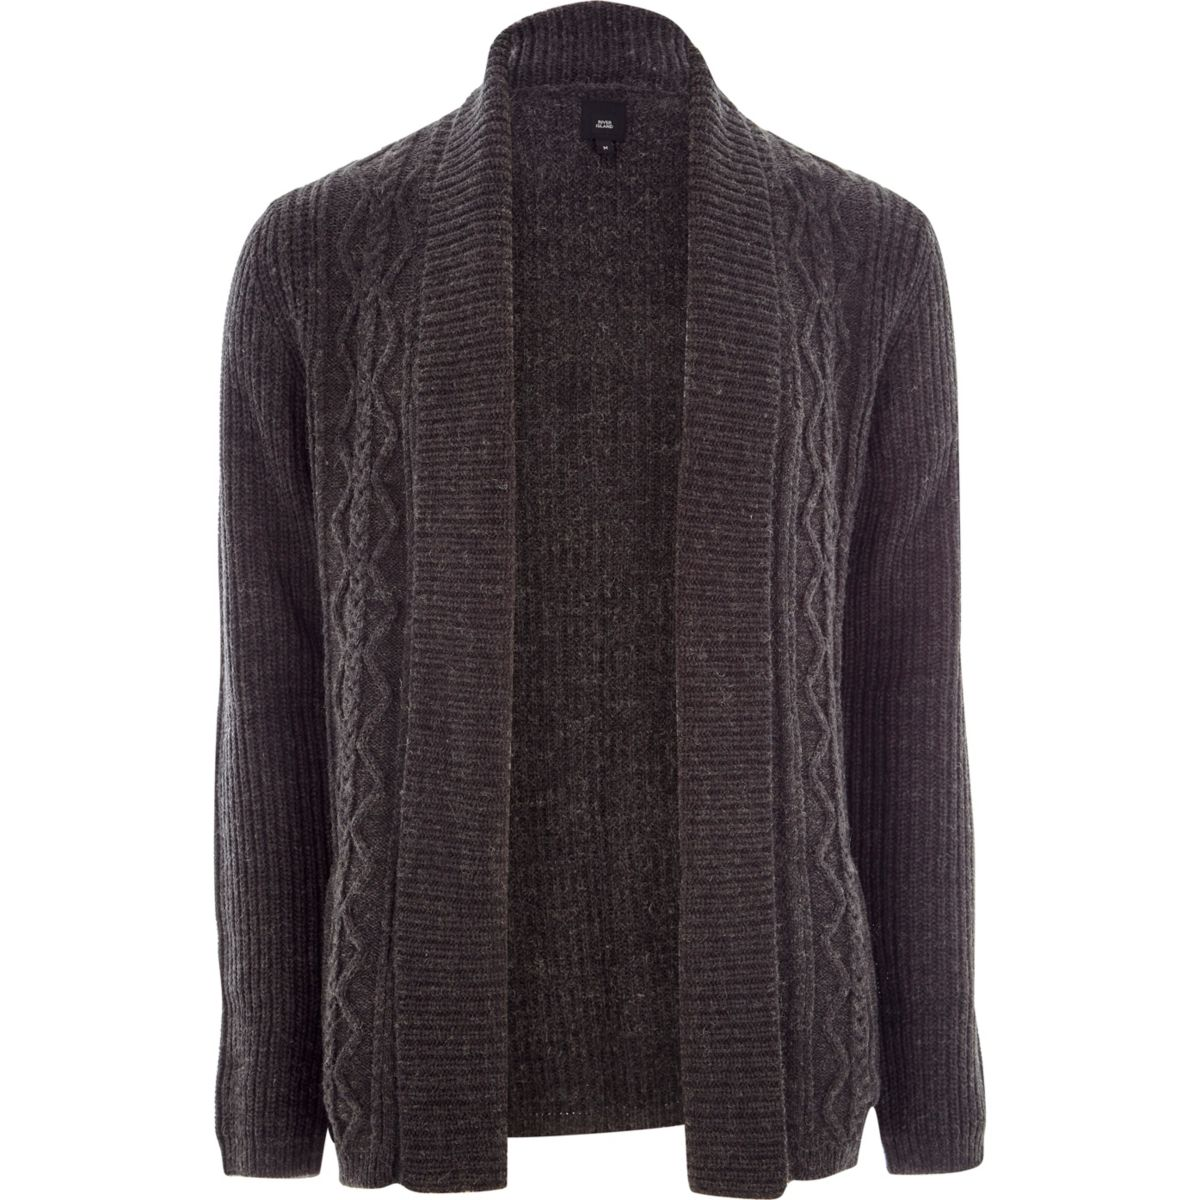 Dark grey cable knit regular fit cardigan